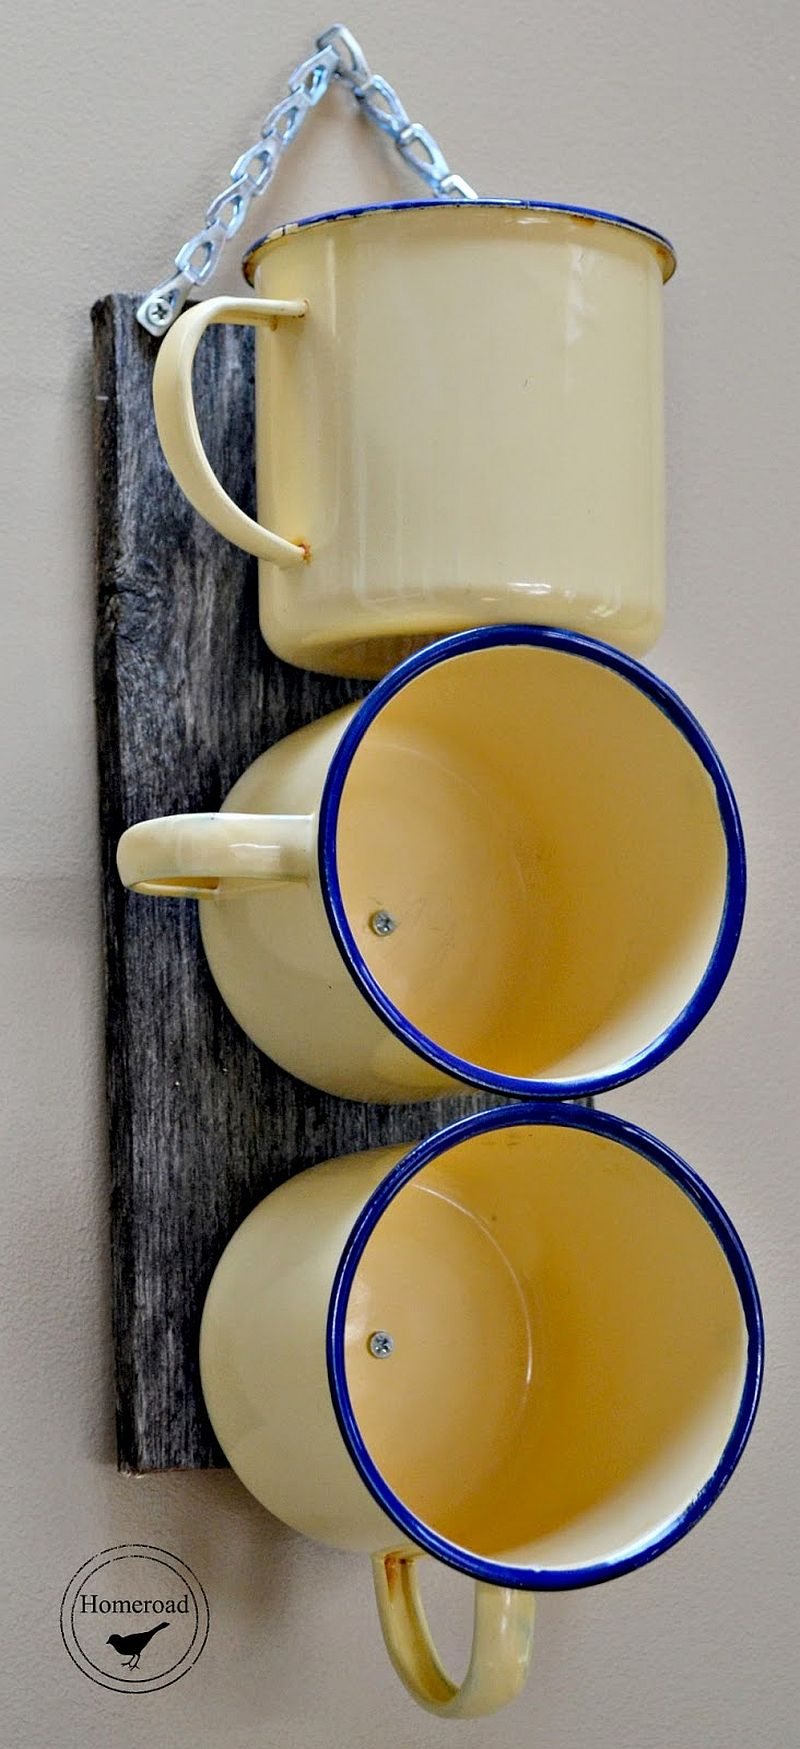 Wall-mounted DIY enamel mug organizer works in more ways than one!